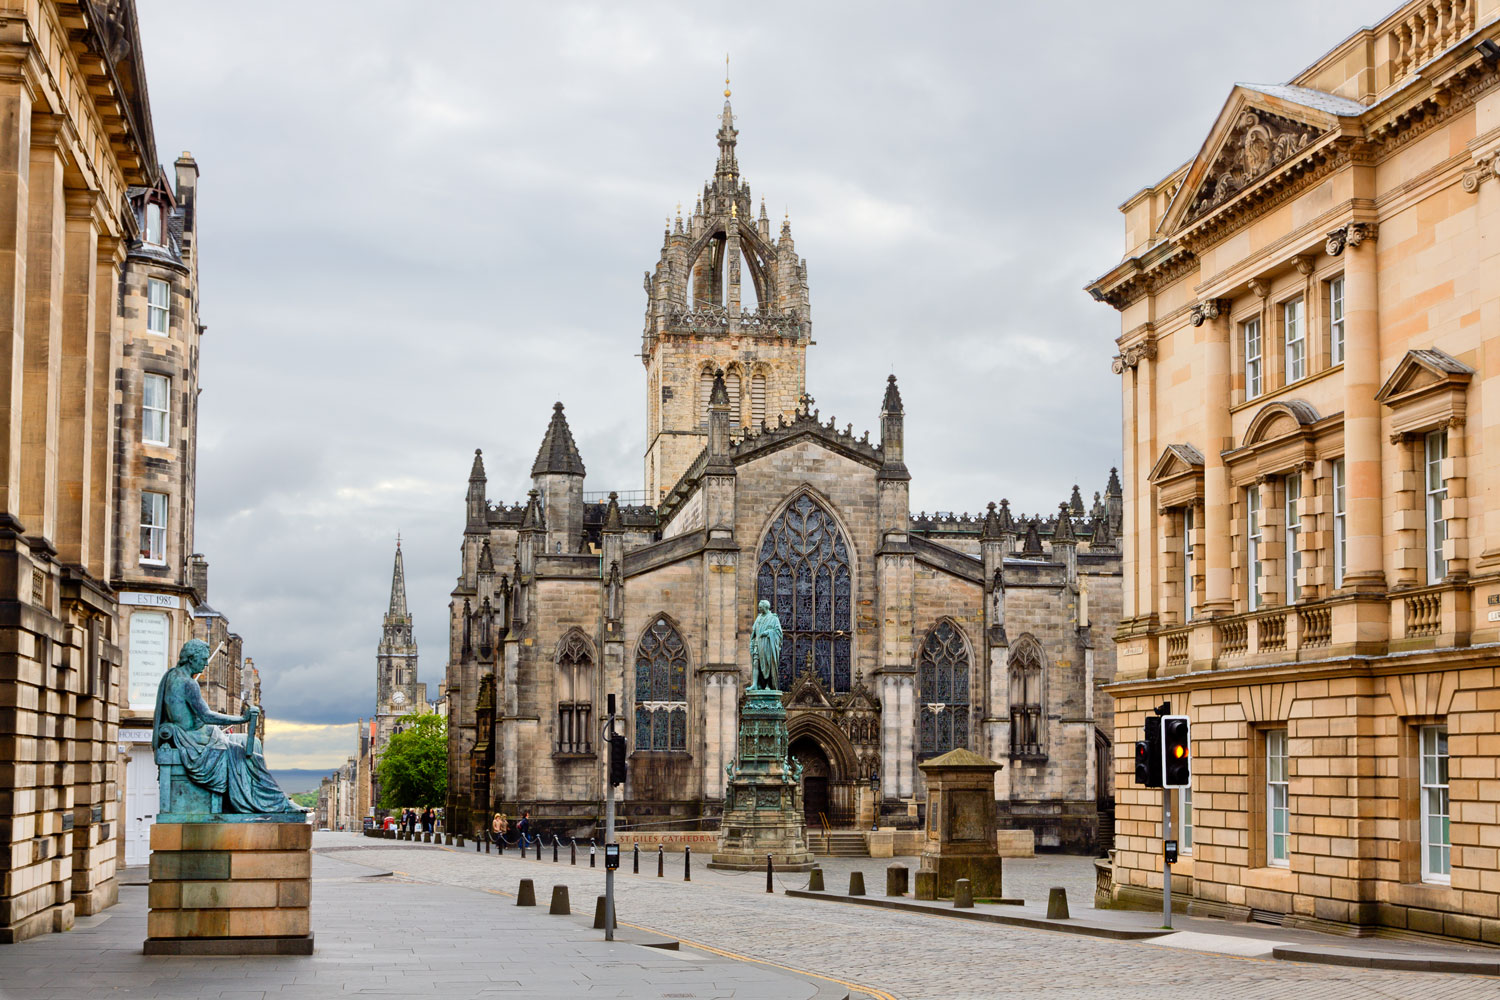 Image of St. Giles' Cathedral